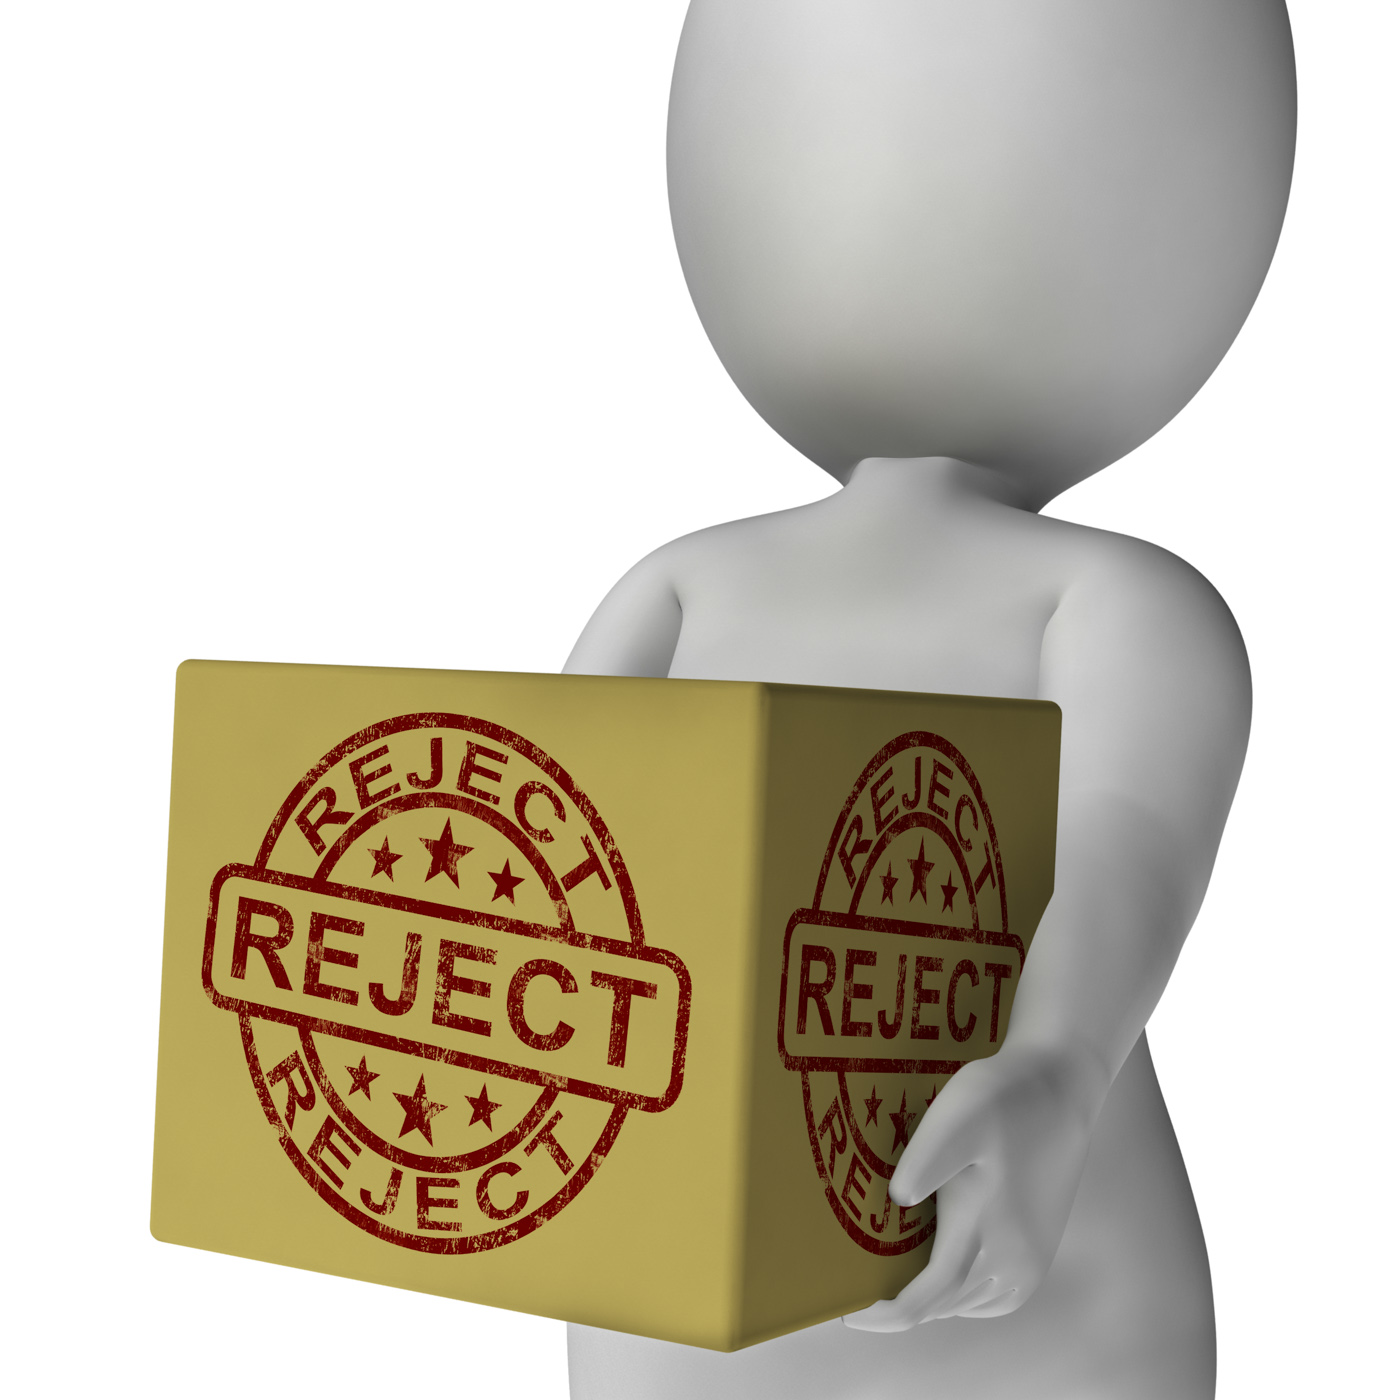 Reject stamp on box shows rejection or denied product photo